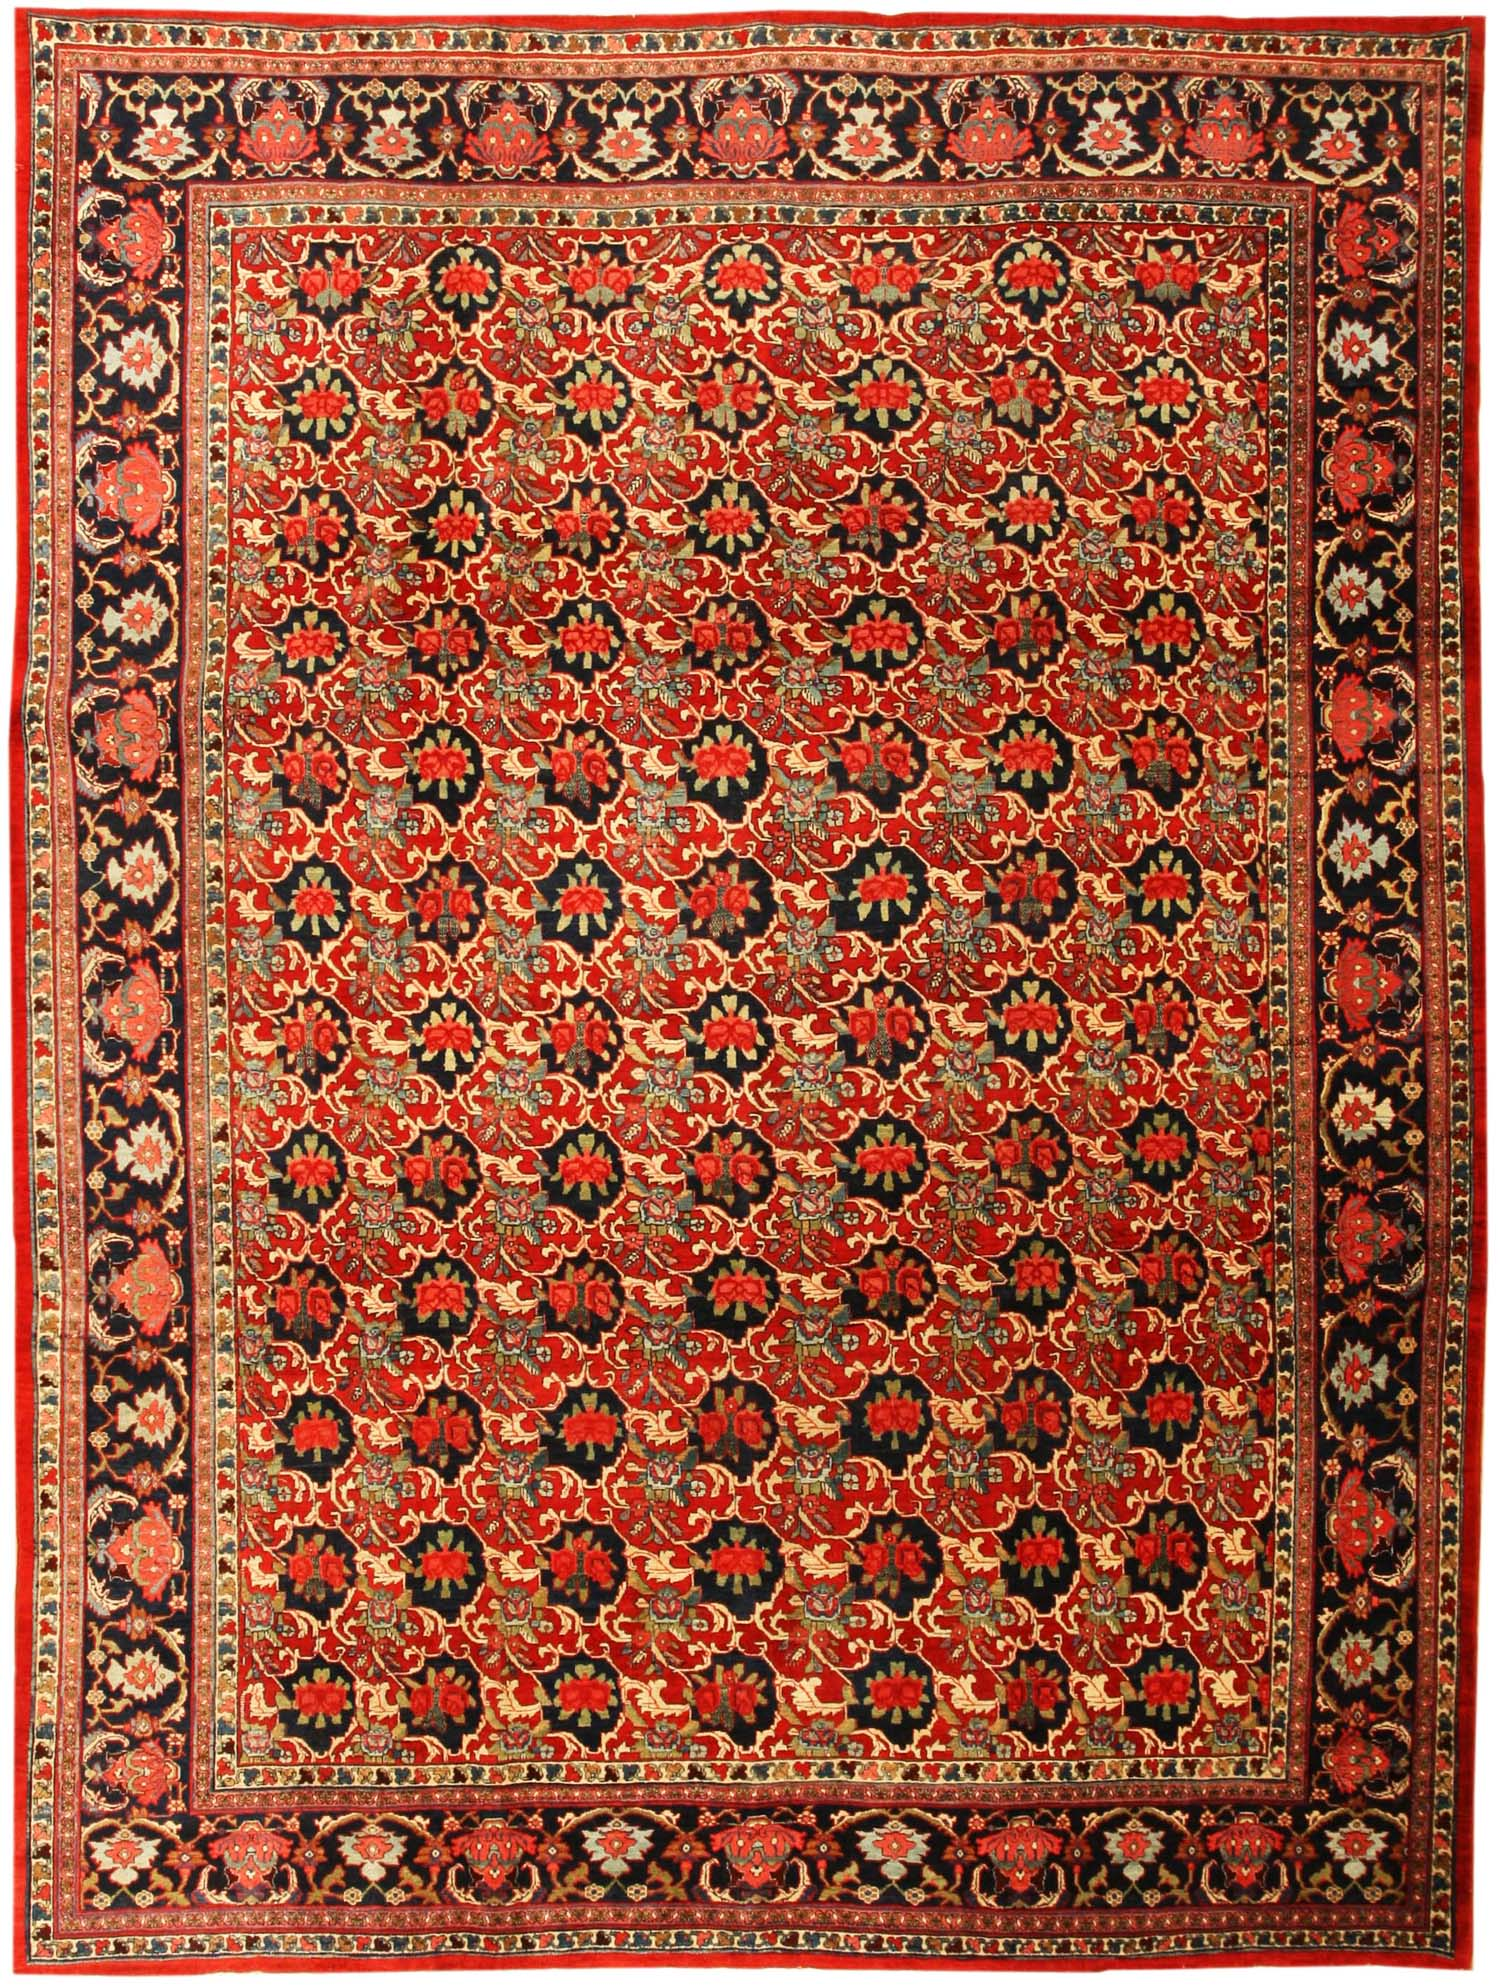 Online Rugs Persian Rug Online Home Decor